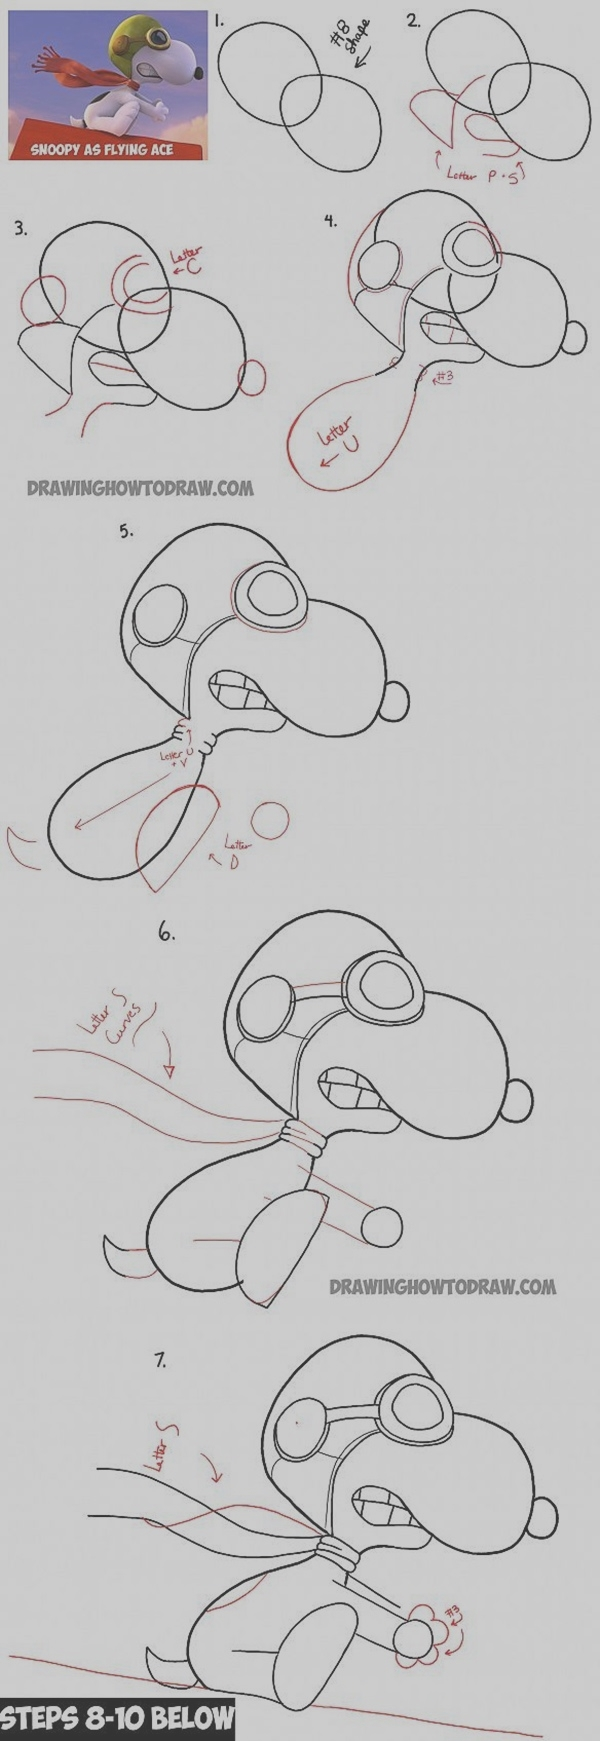 Easy Step by Step Art Drawings to Practice (25)